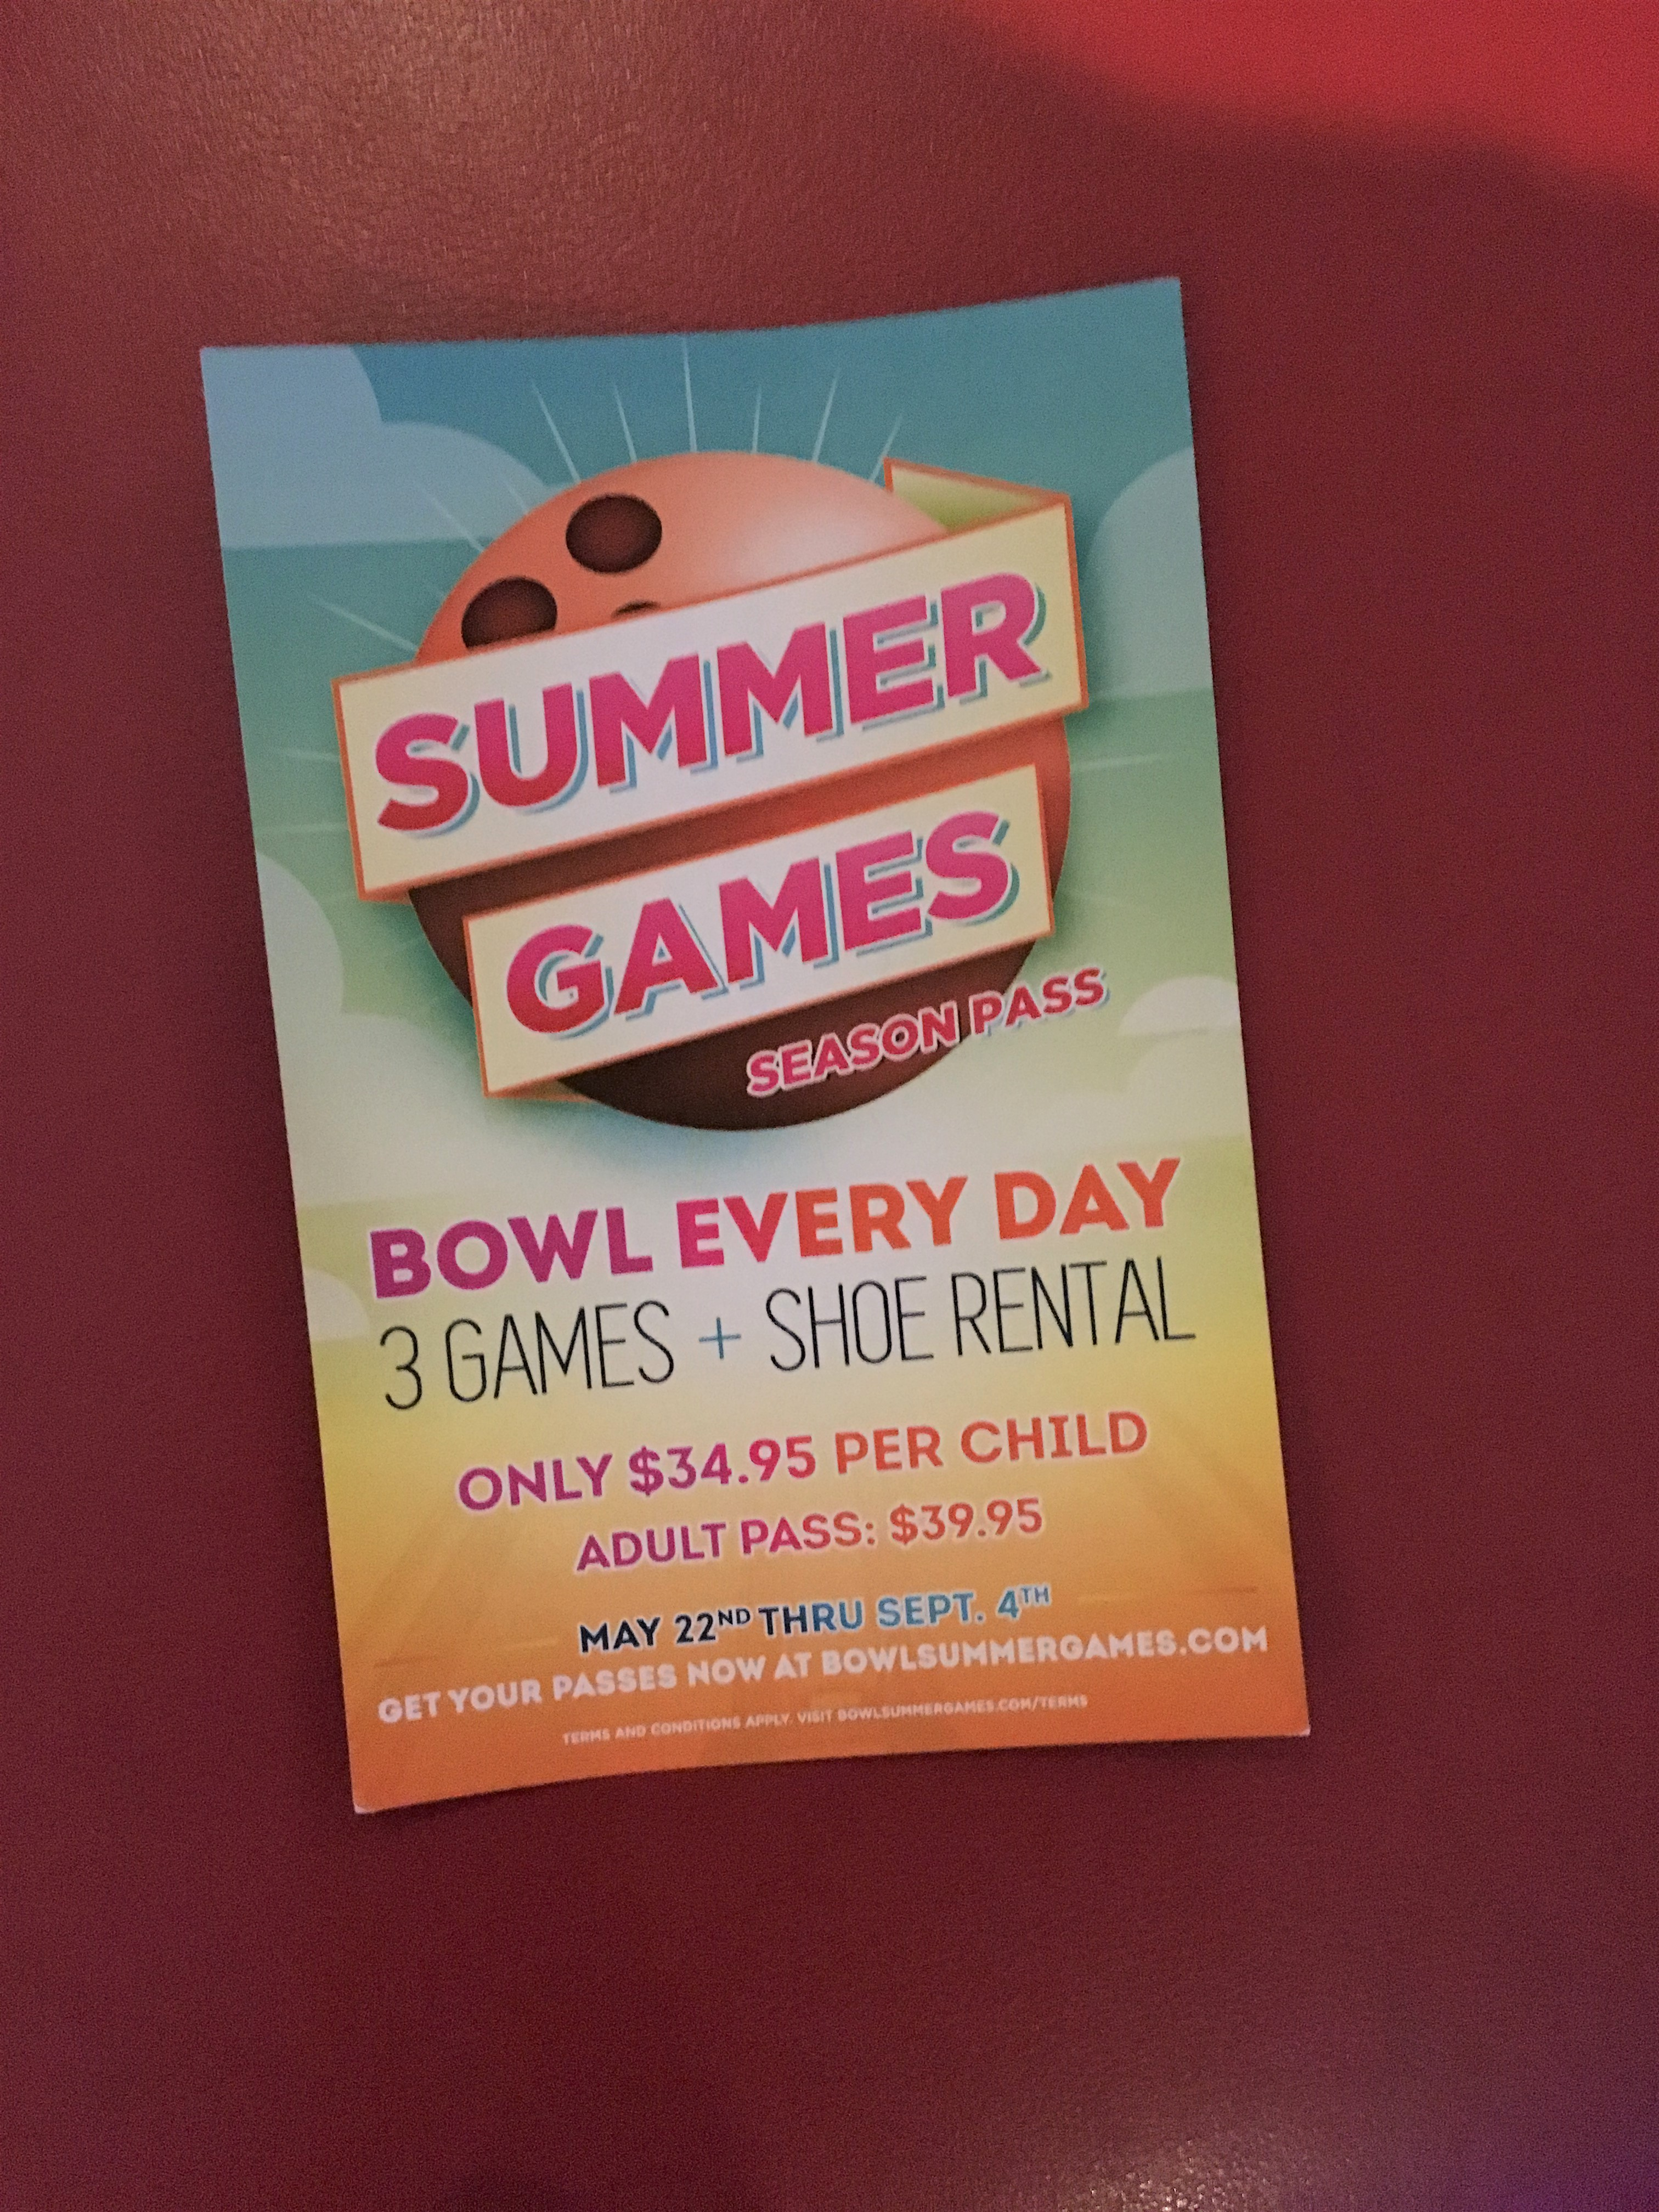 Chill out and bowl away the summer with season passes | The